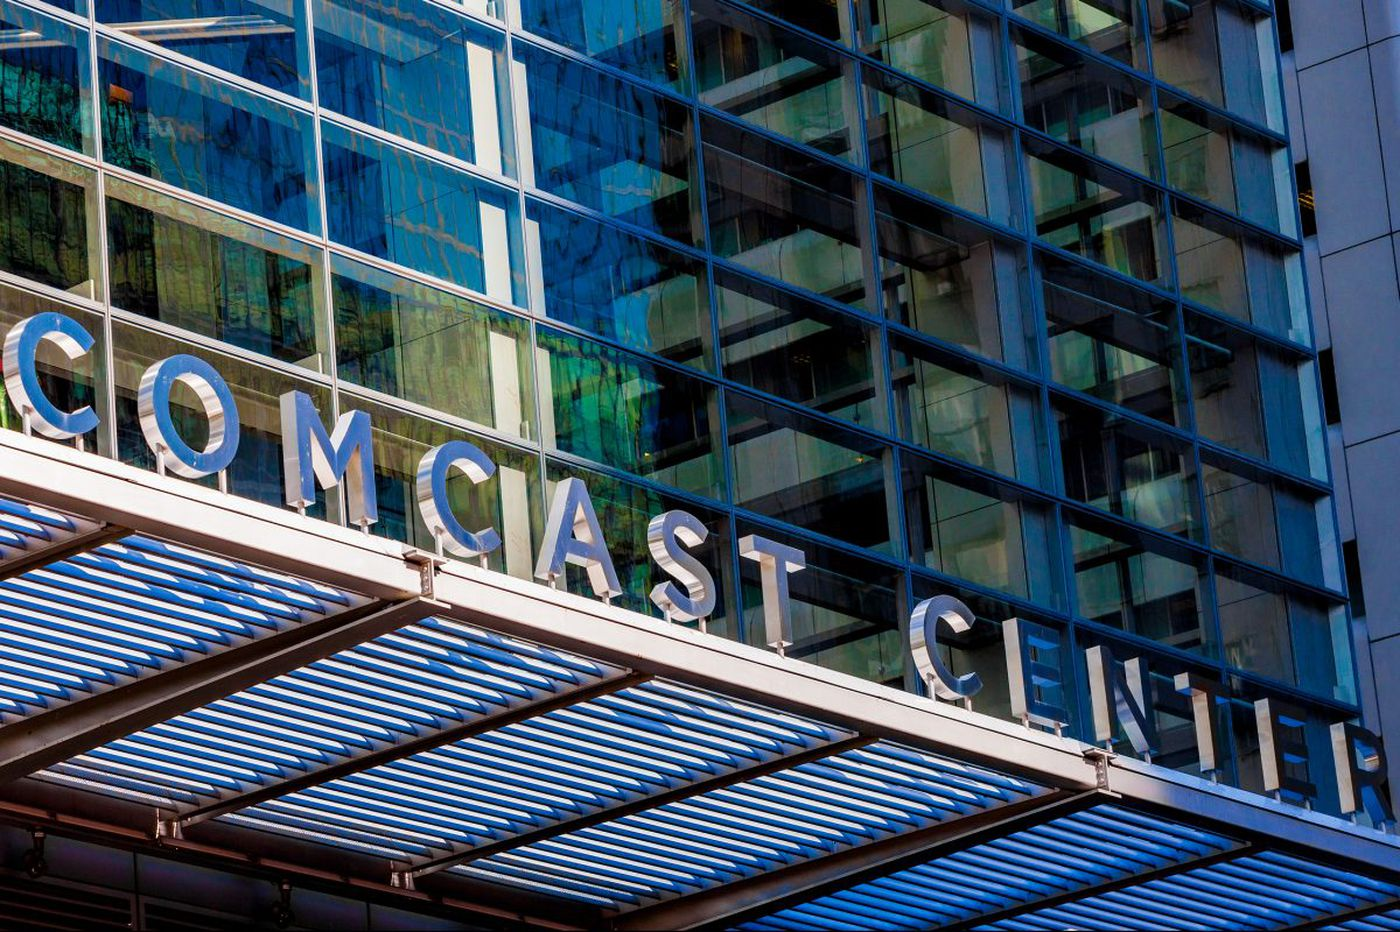 Comcast employees win big with $100M in bonuses with Republican tax plan